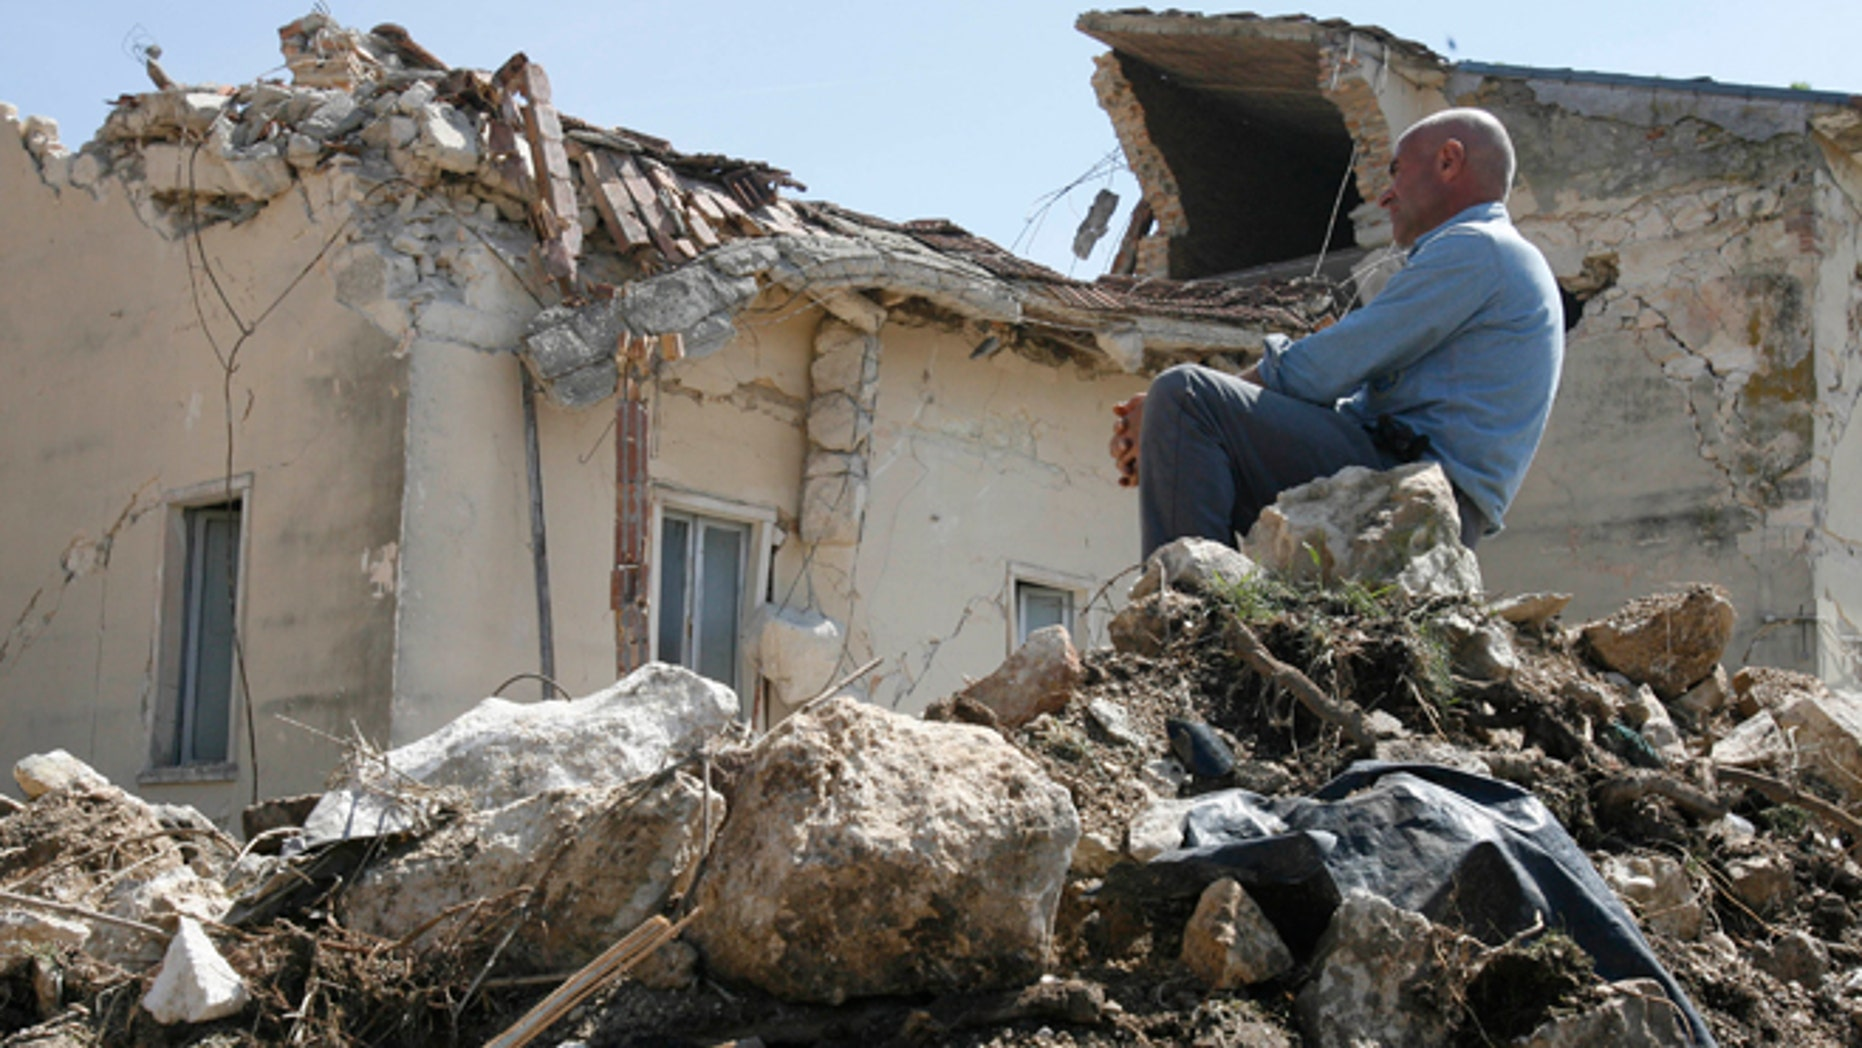 April 7, 2009: A man sits on rubbles in the village of Onna, a day after a powerful earthquake struck the Abruzzo region in central Italy.